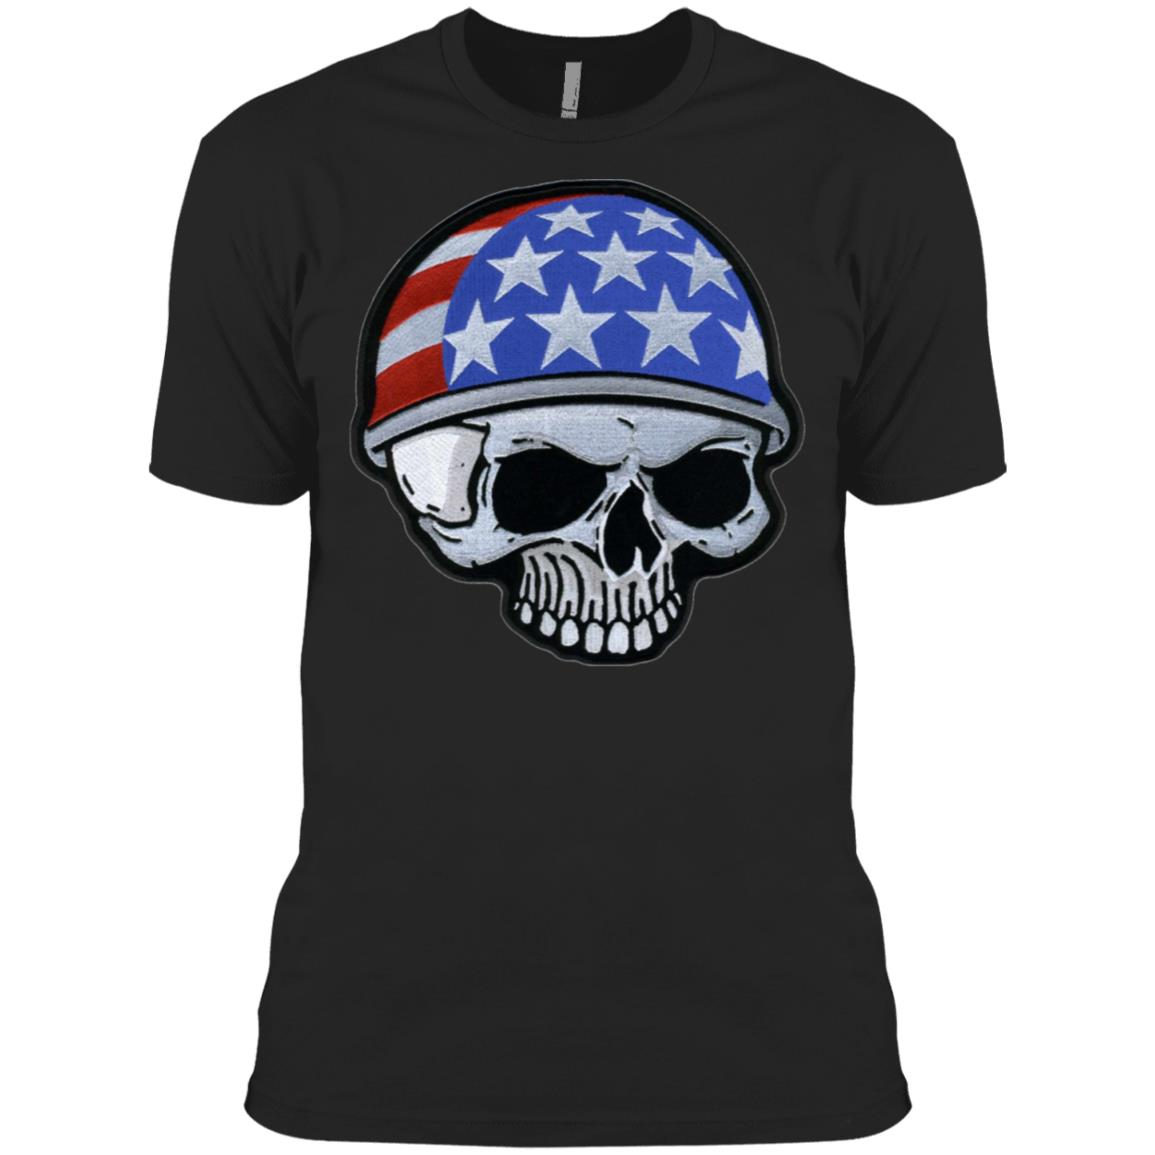 Motorcycle Helmet Skull Flag American Veterans Day 3600A Next Level Men's Made in USA Cotton T-Shirt